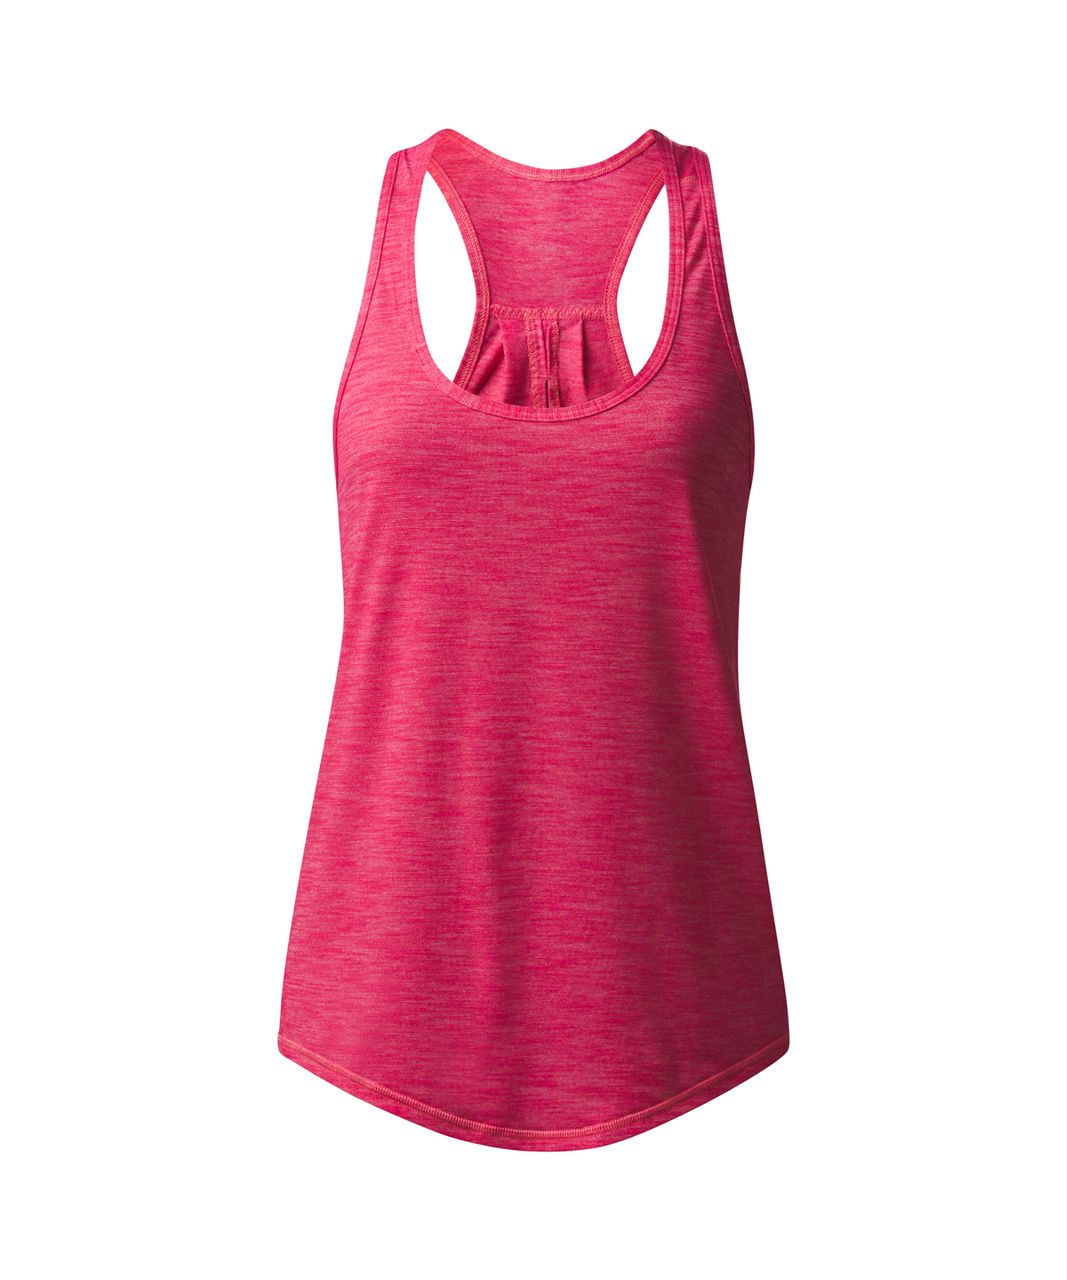 Lululemon Salute the Sun Tank - Heathered Boom Juice